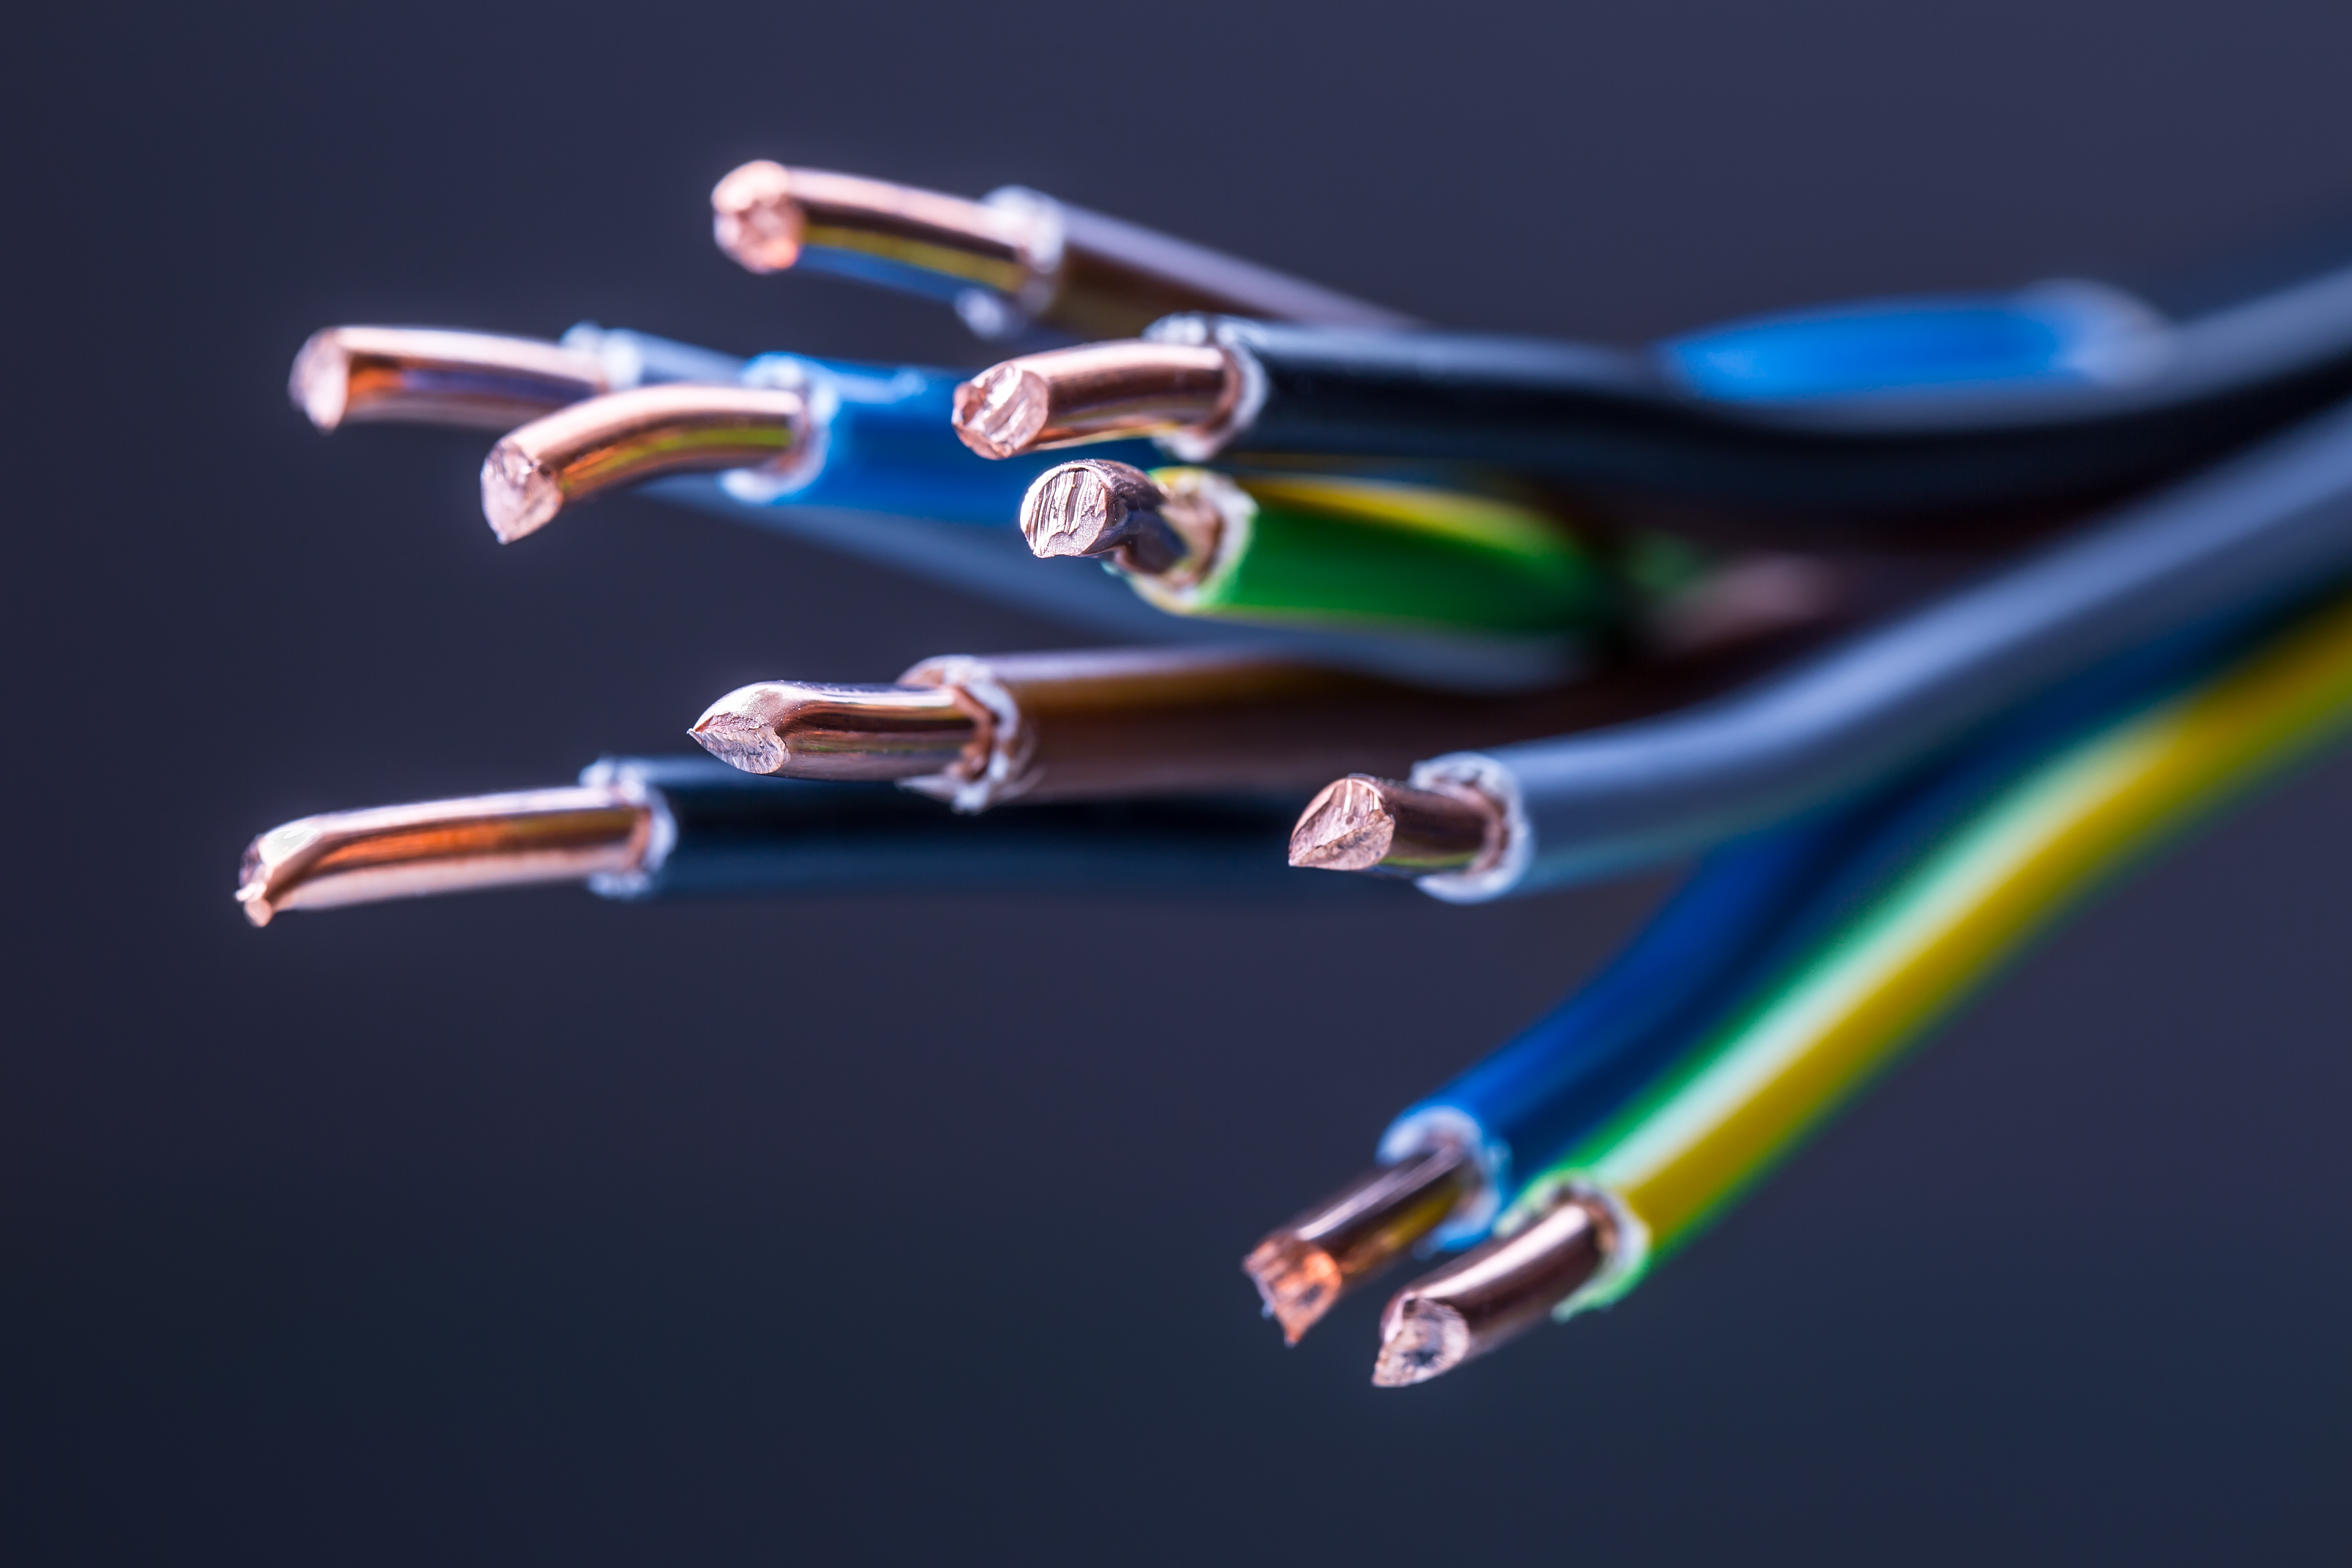 7 Things to Look for When Searching for a Service Electrician